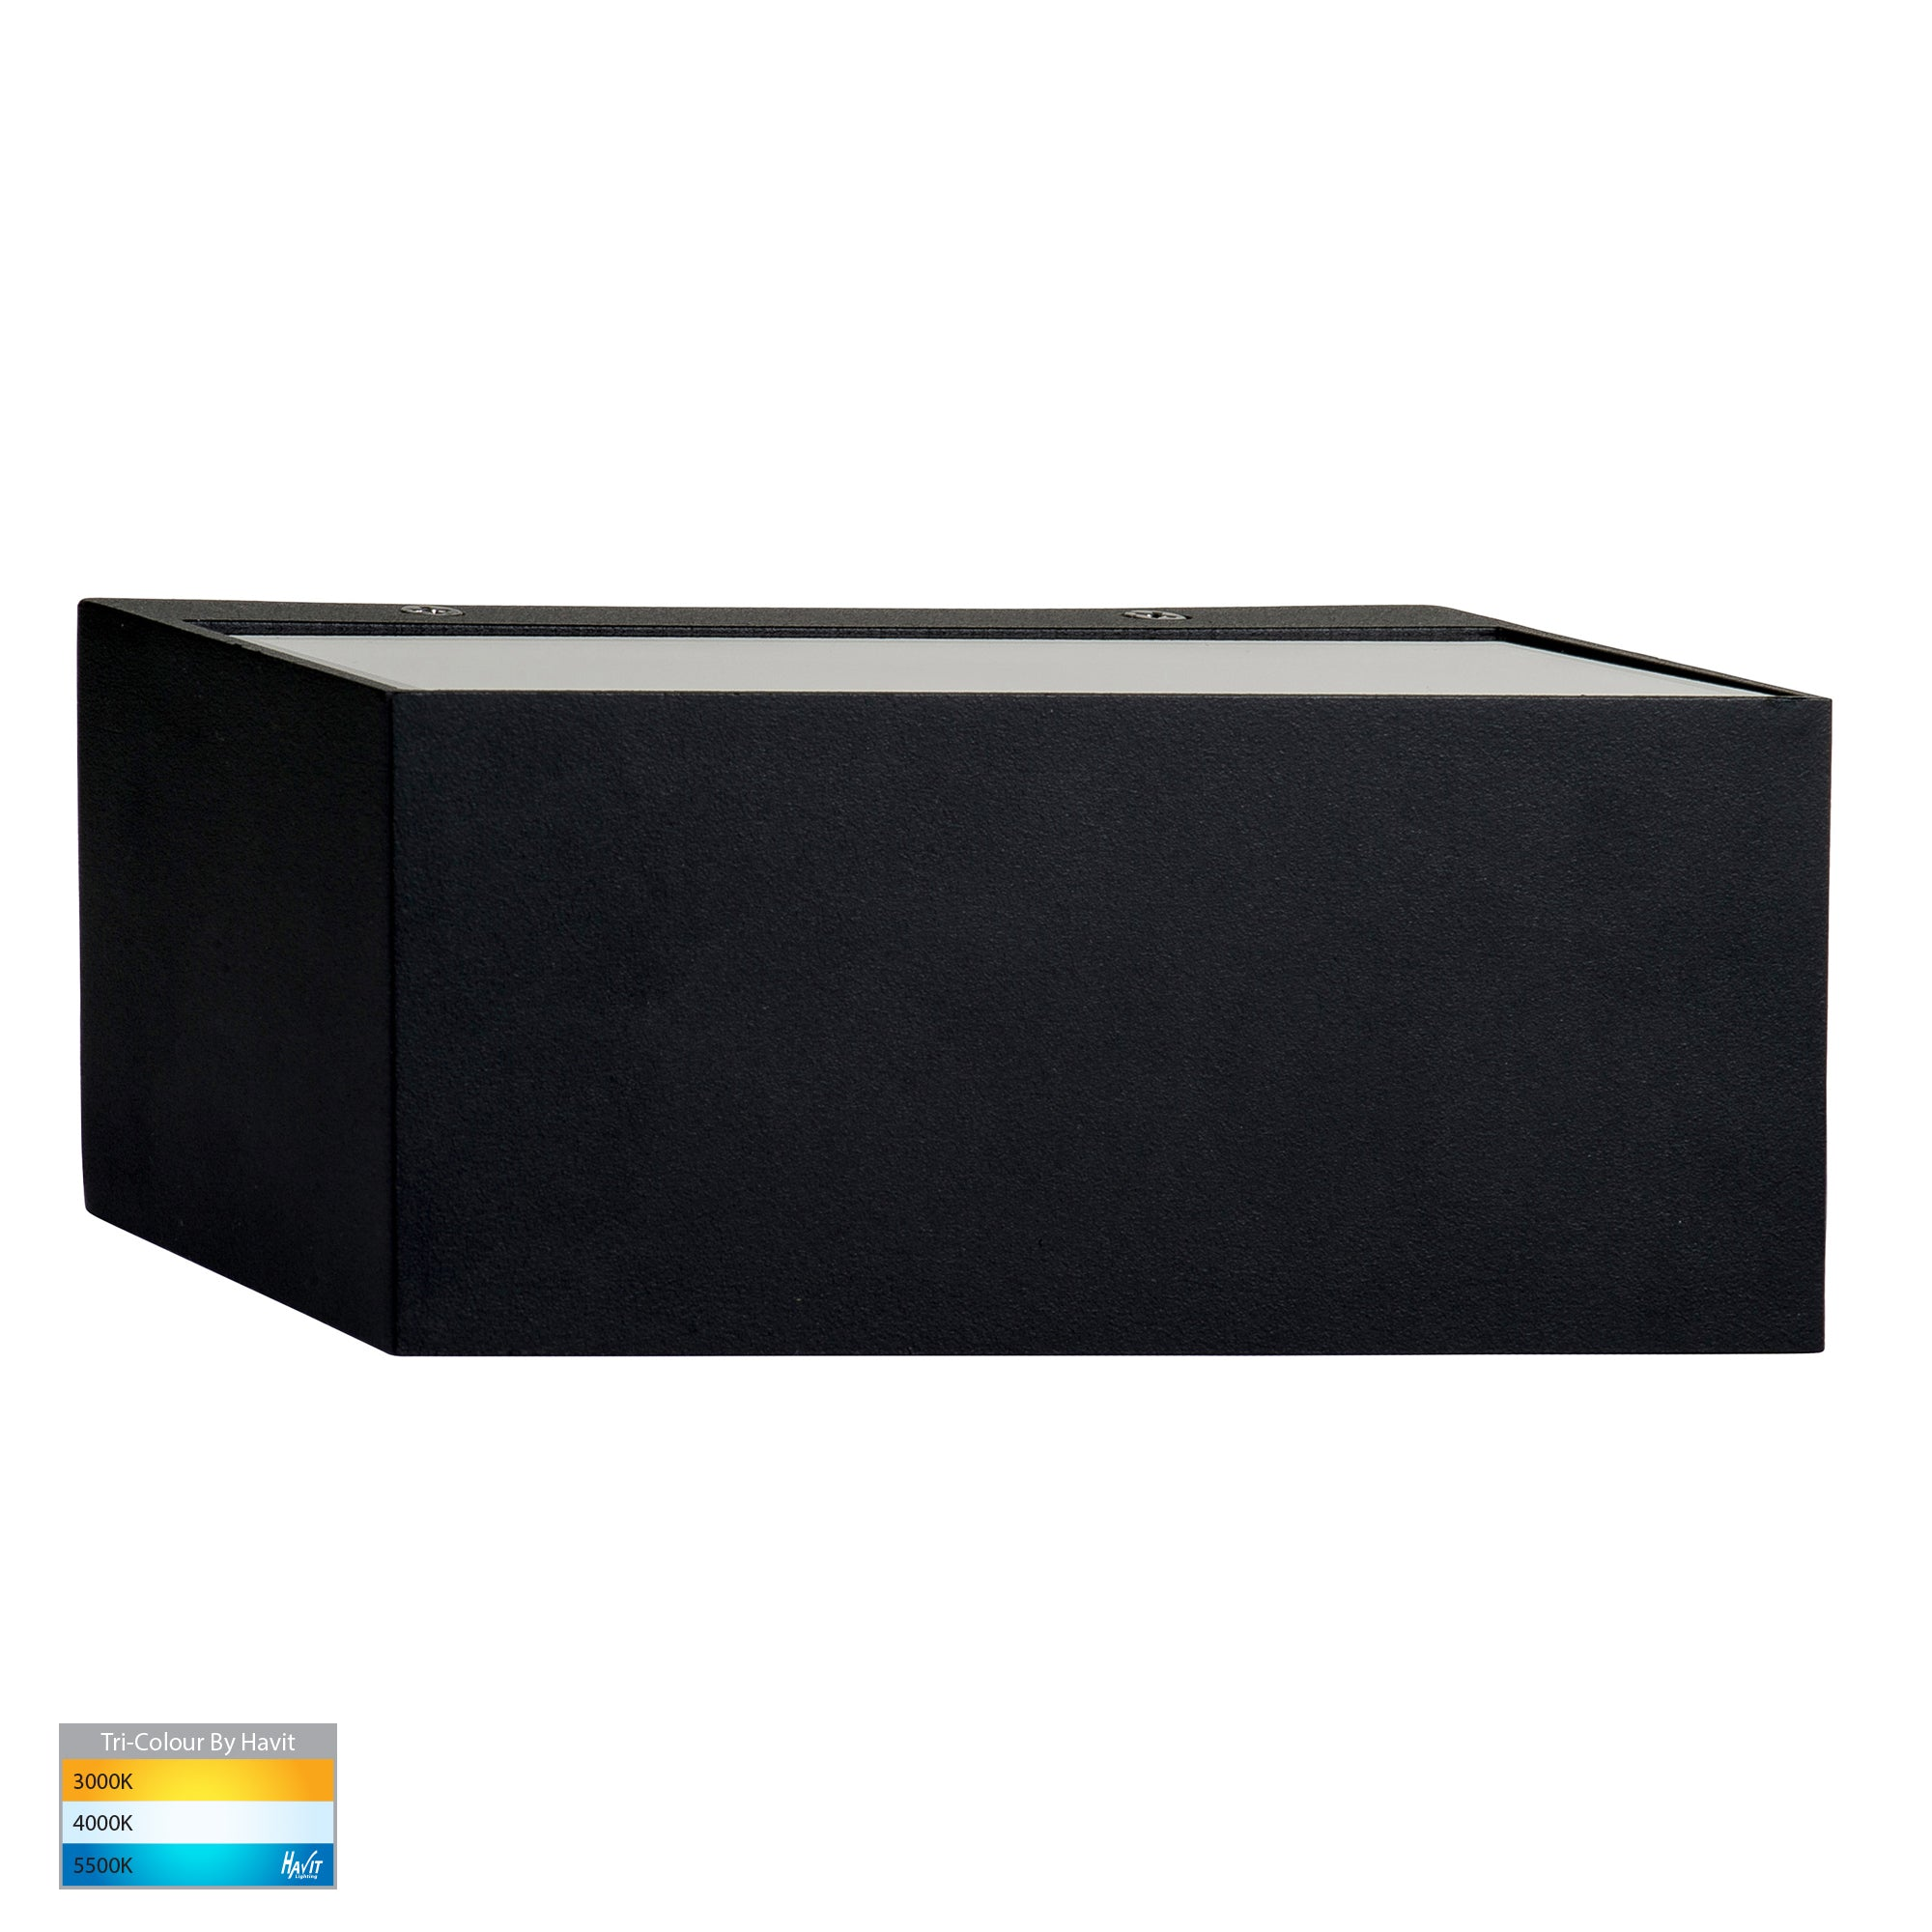 HV3637T-BLK - Nikki Black Up & Down LED Wall Light